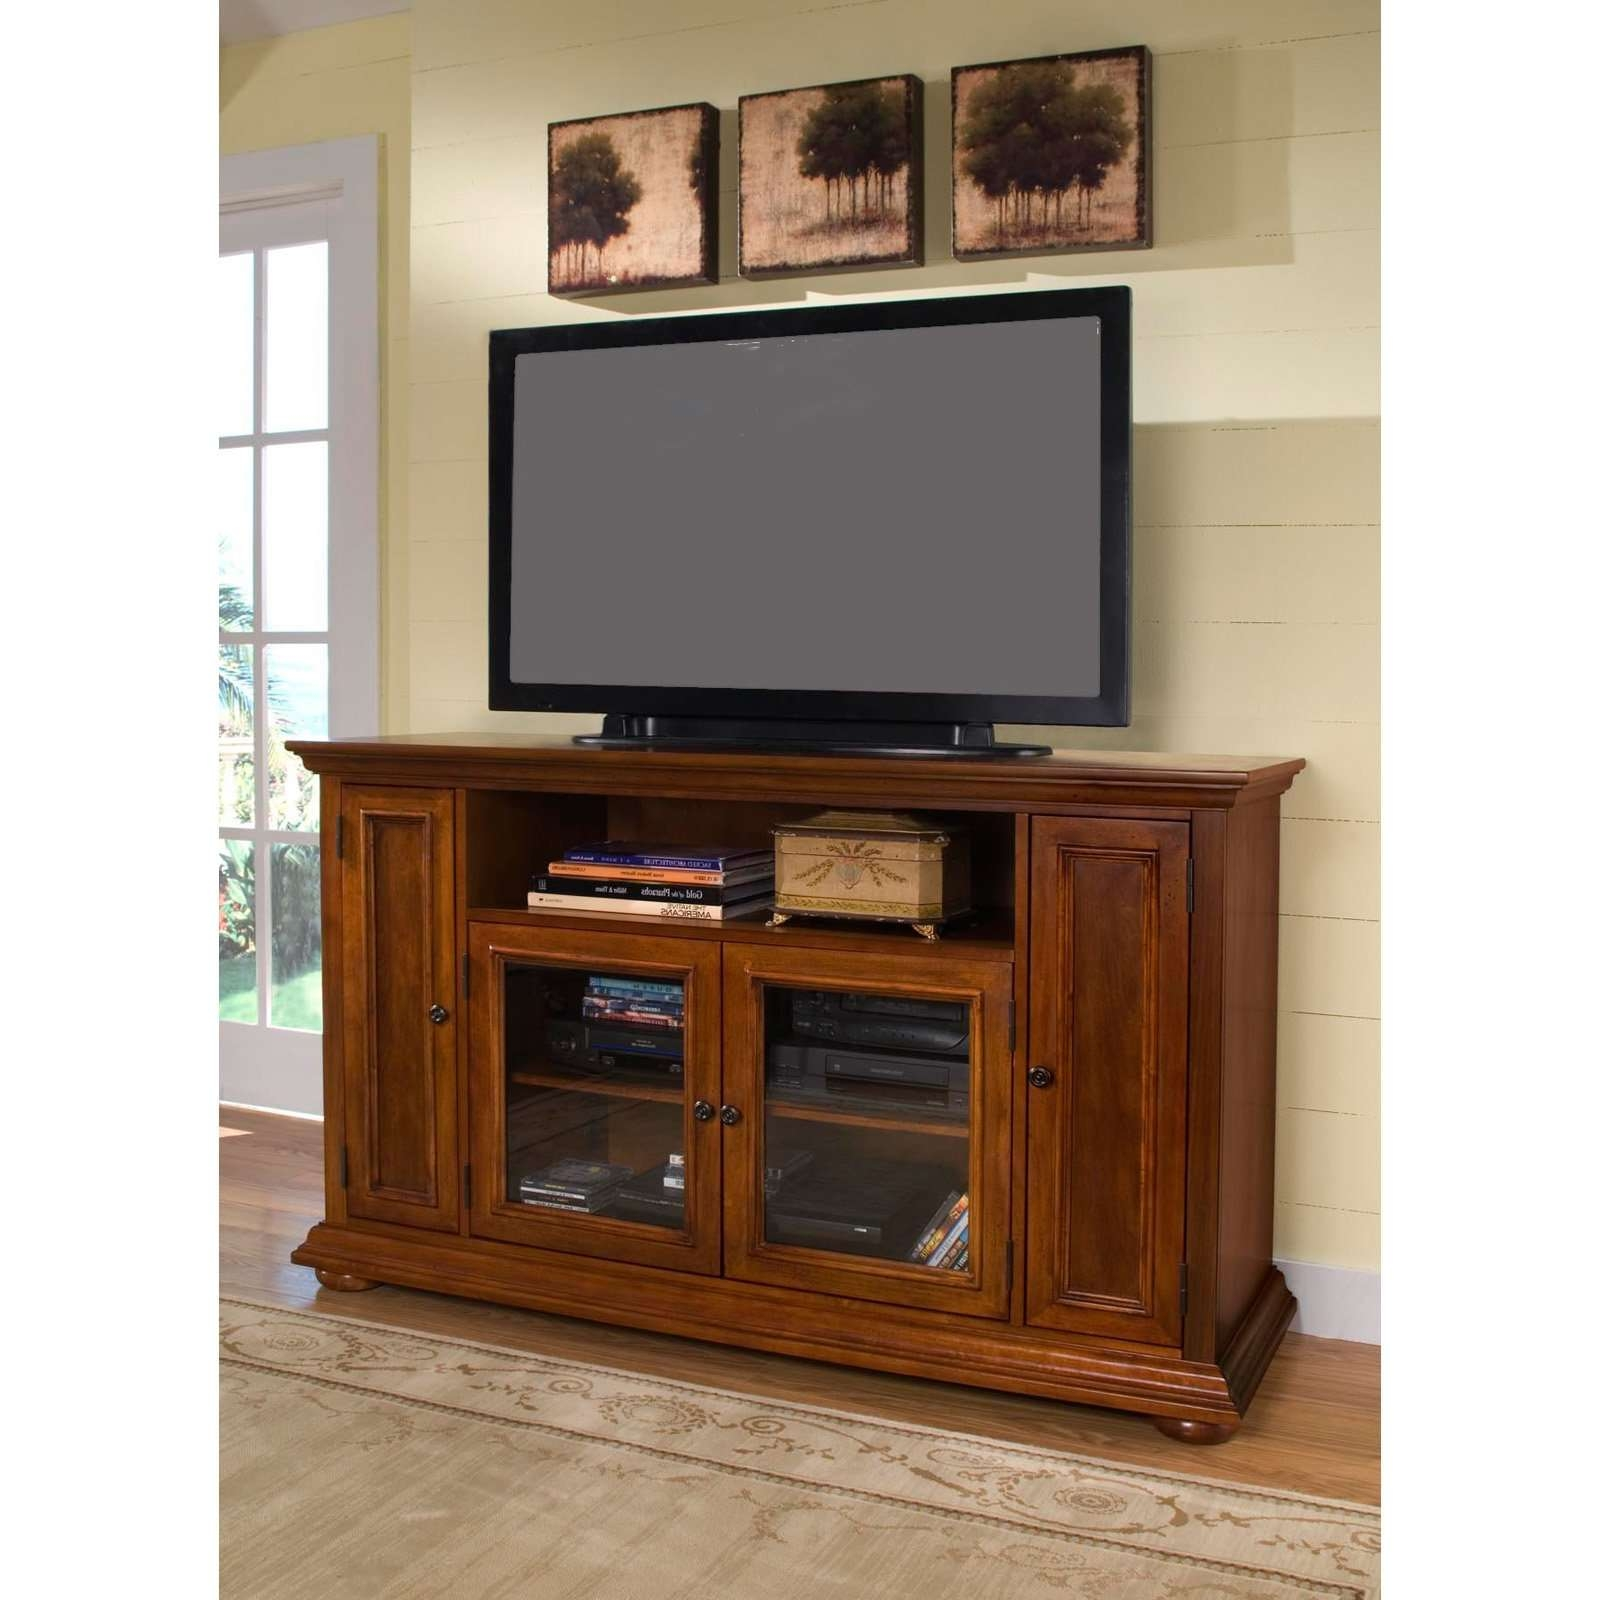 Rectangle Black Flat Screen Tv Over Brown Wooden Cabinet With Within Black Tv Cabinets With Doors (View 18 of 20)